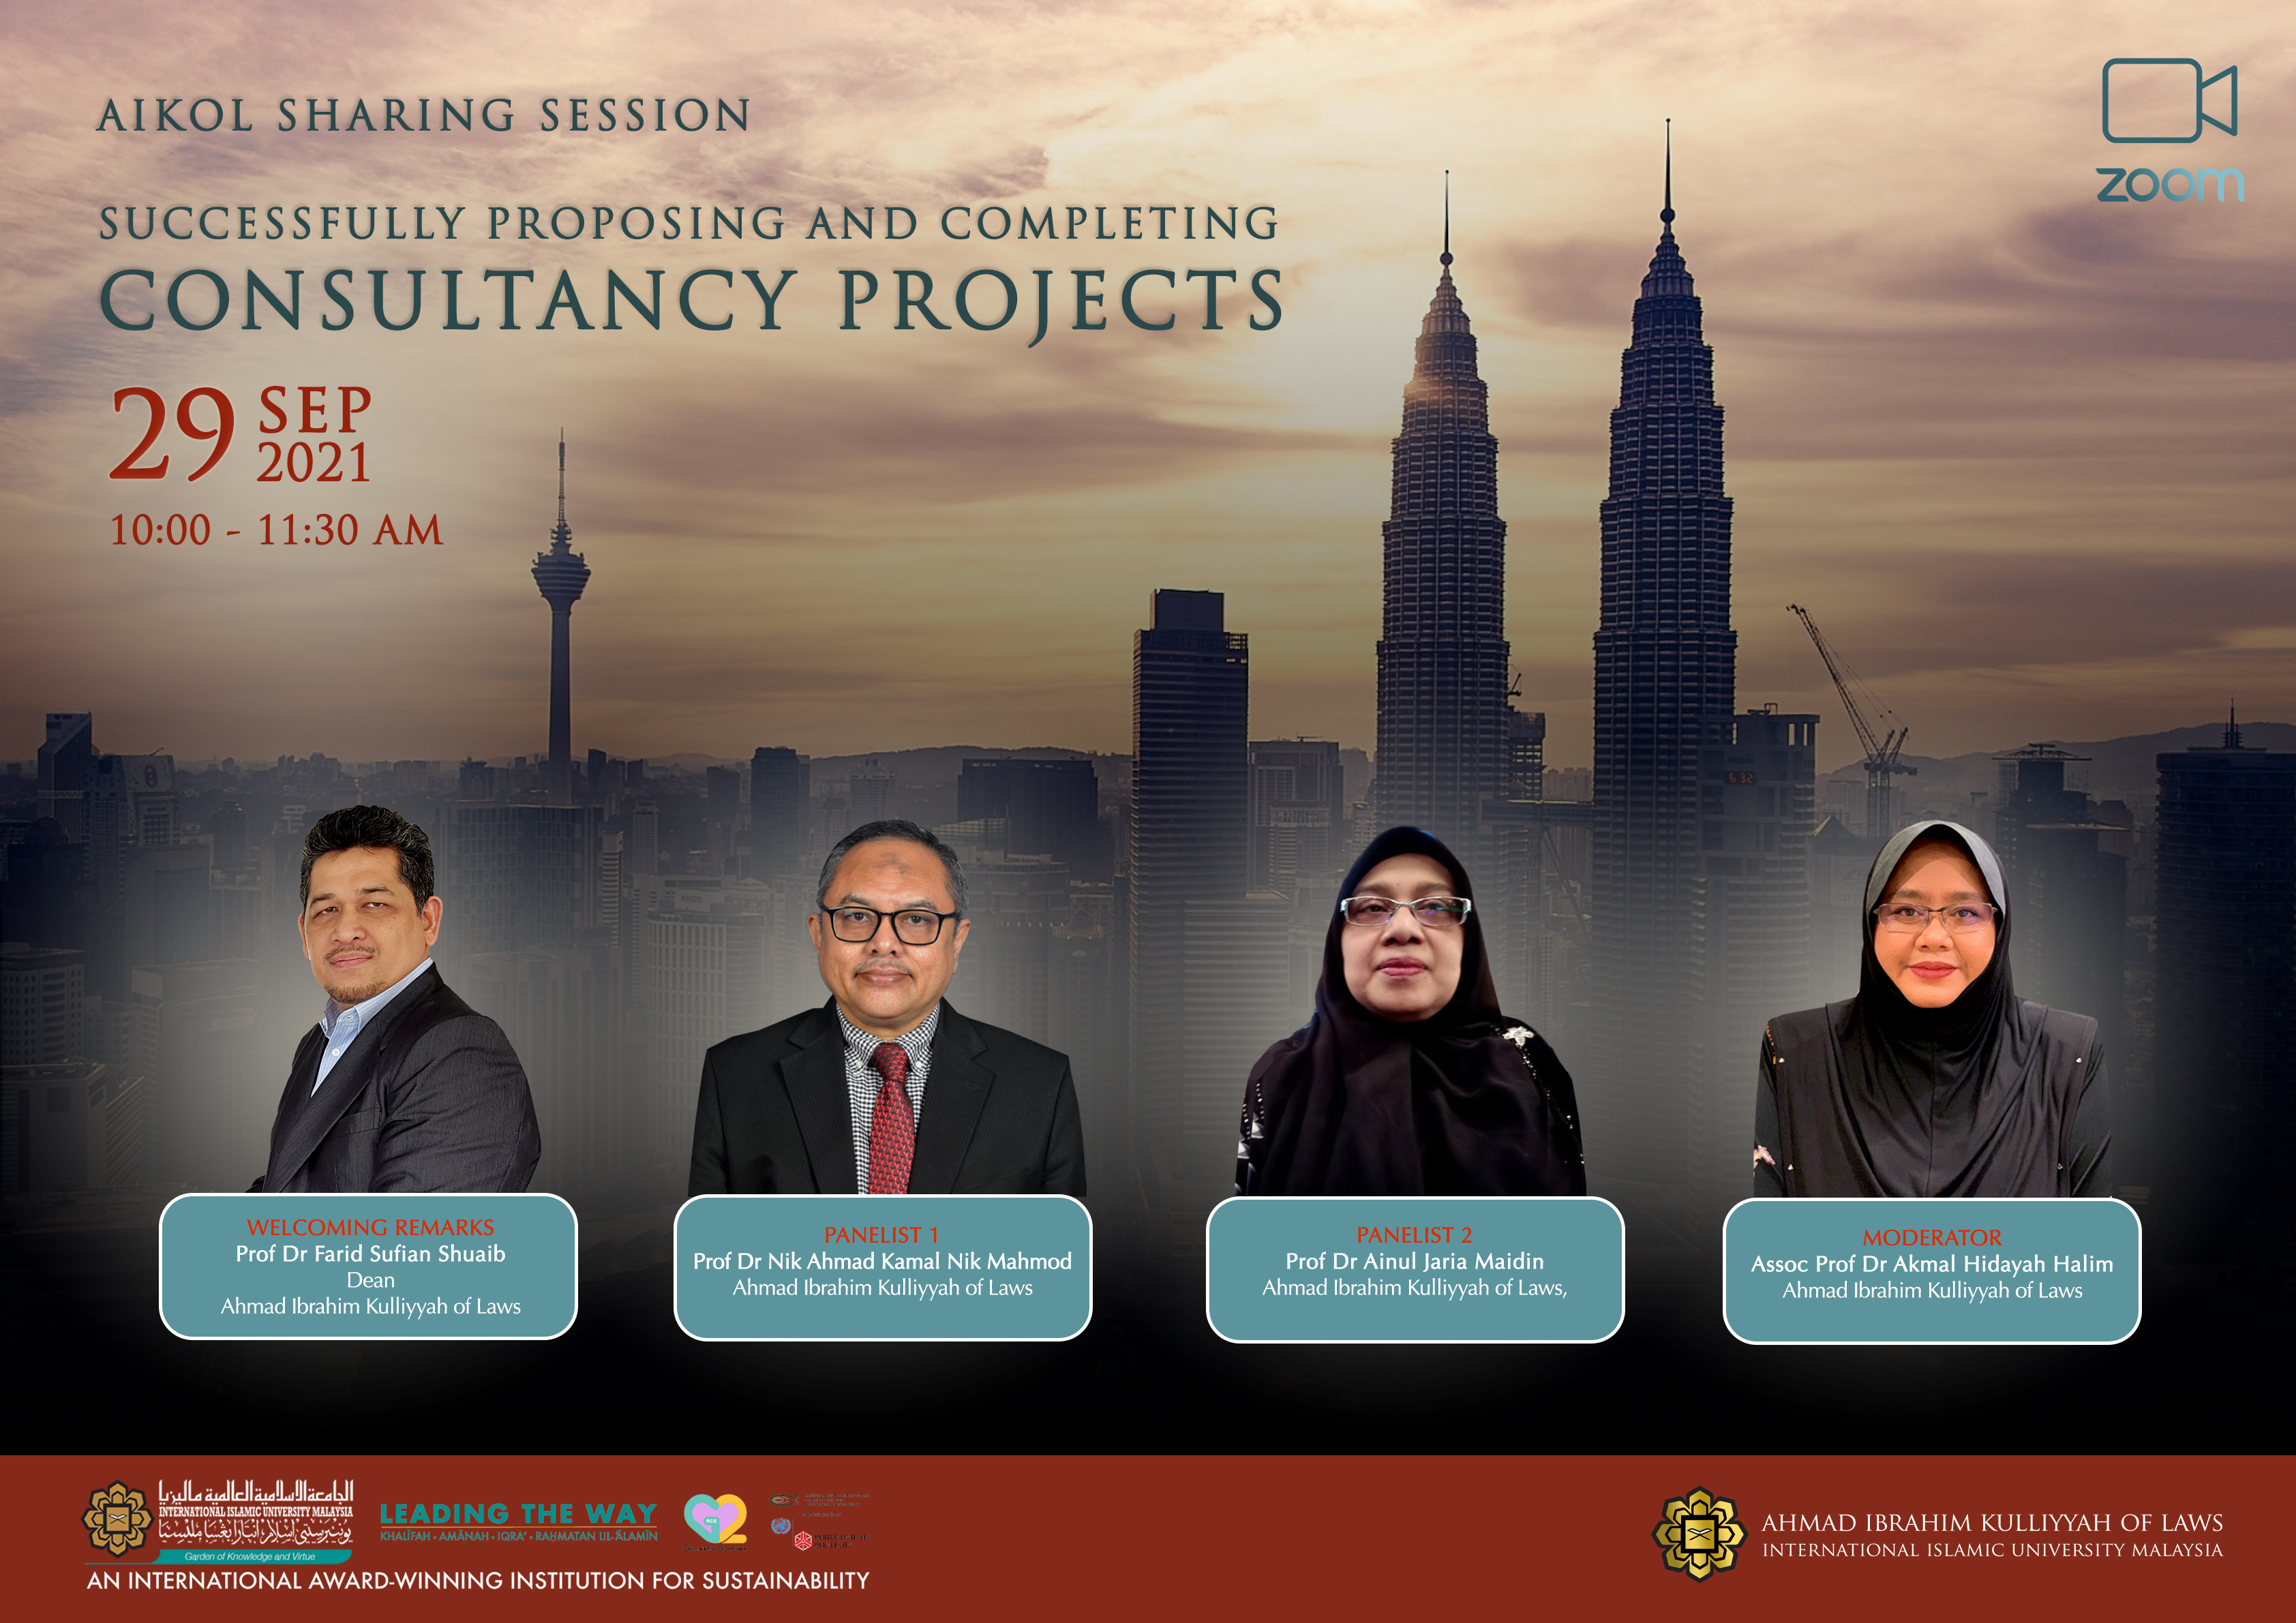 AIKOL SHARING SESSION: SUCCESSFULLY PROPOSING AND COMPLETING CONSULTANCY PROJECTS